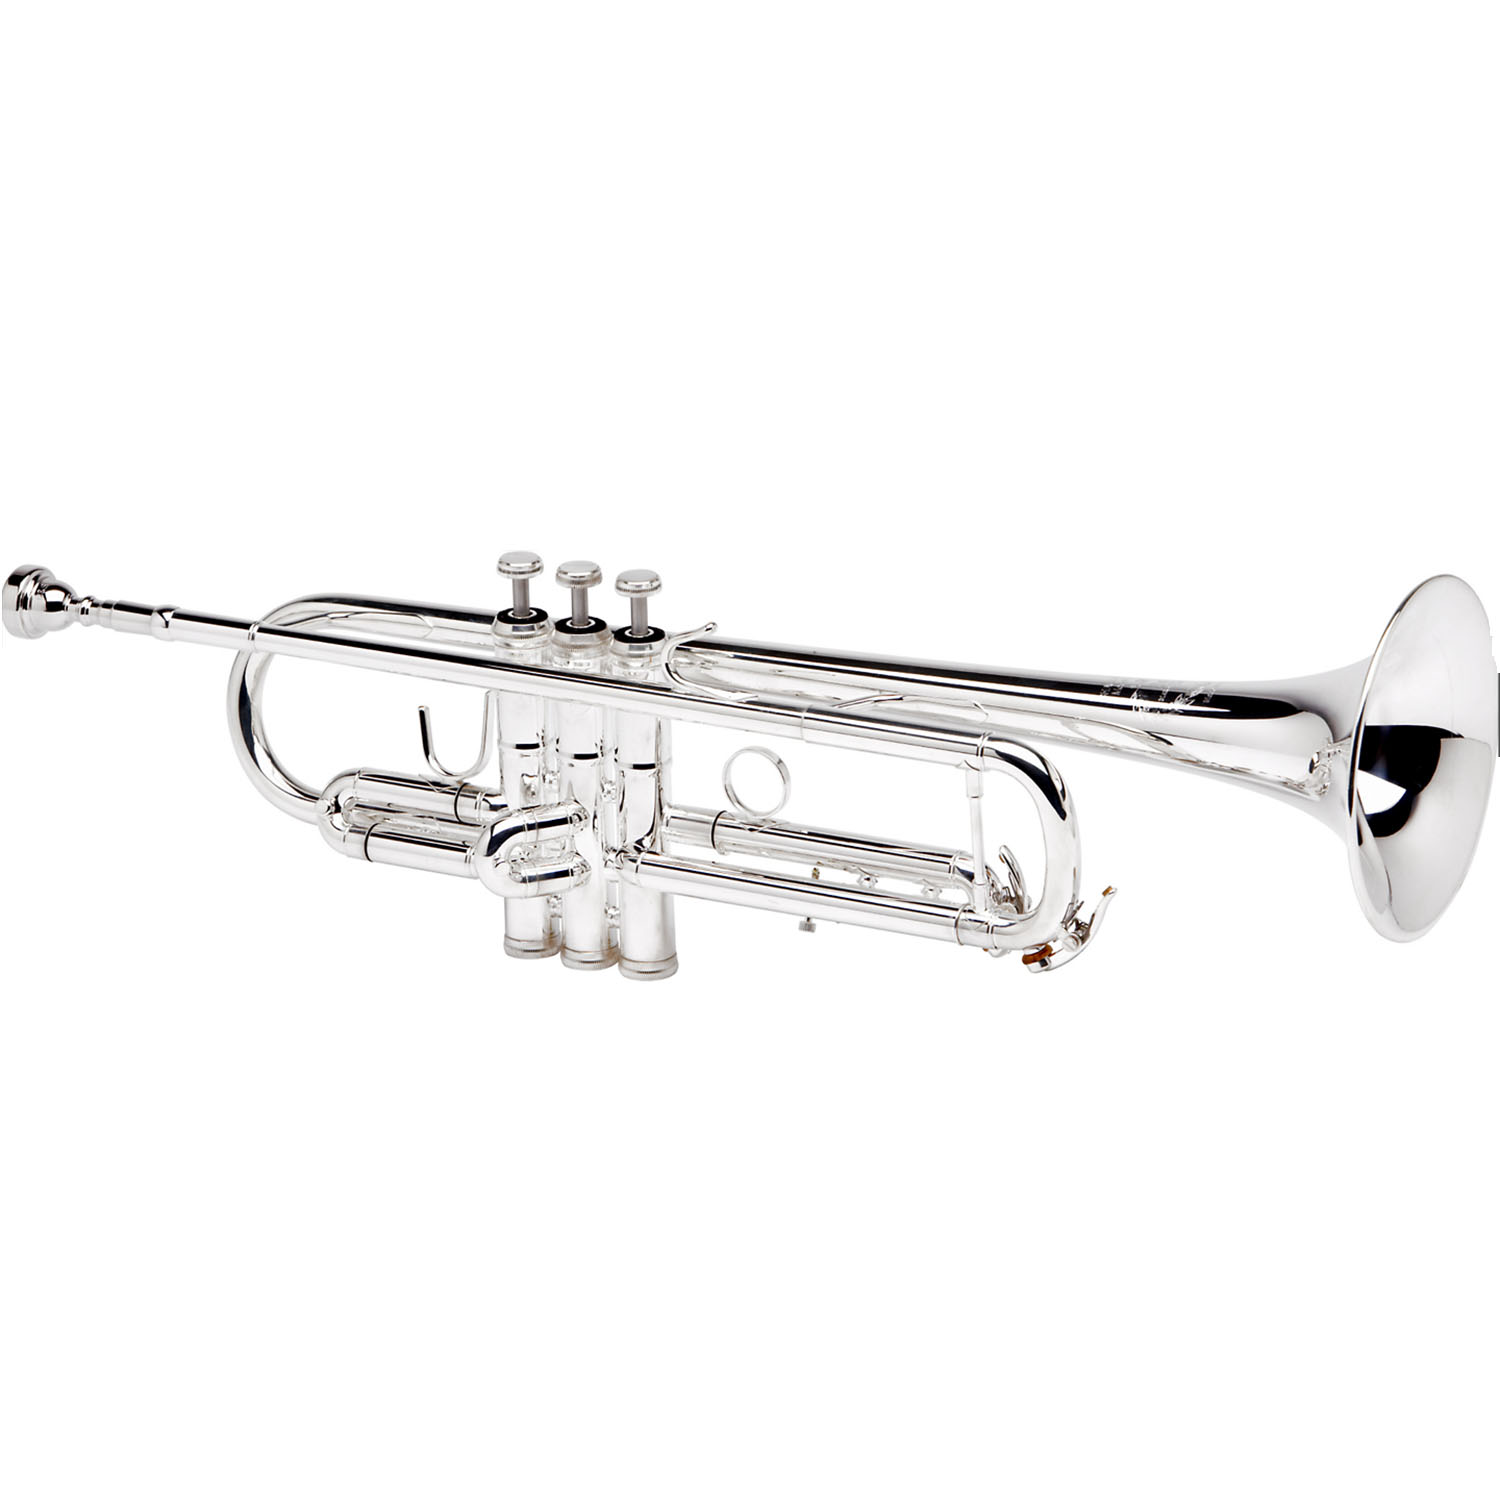 """B&S """"Challenger II"""" Professional Bb Trumpet - #43 Bell - Silver Plating - Reverse Leadpipe"""